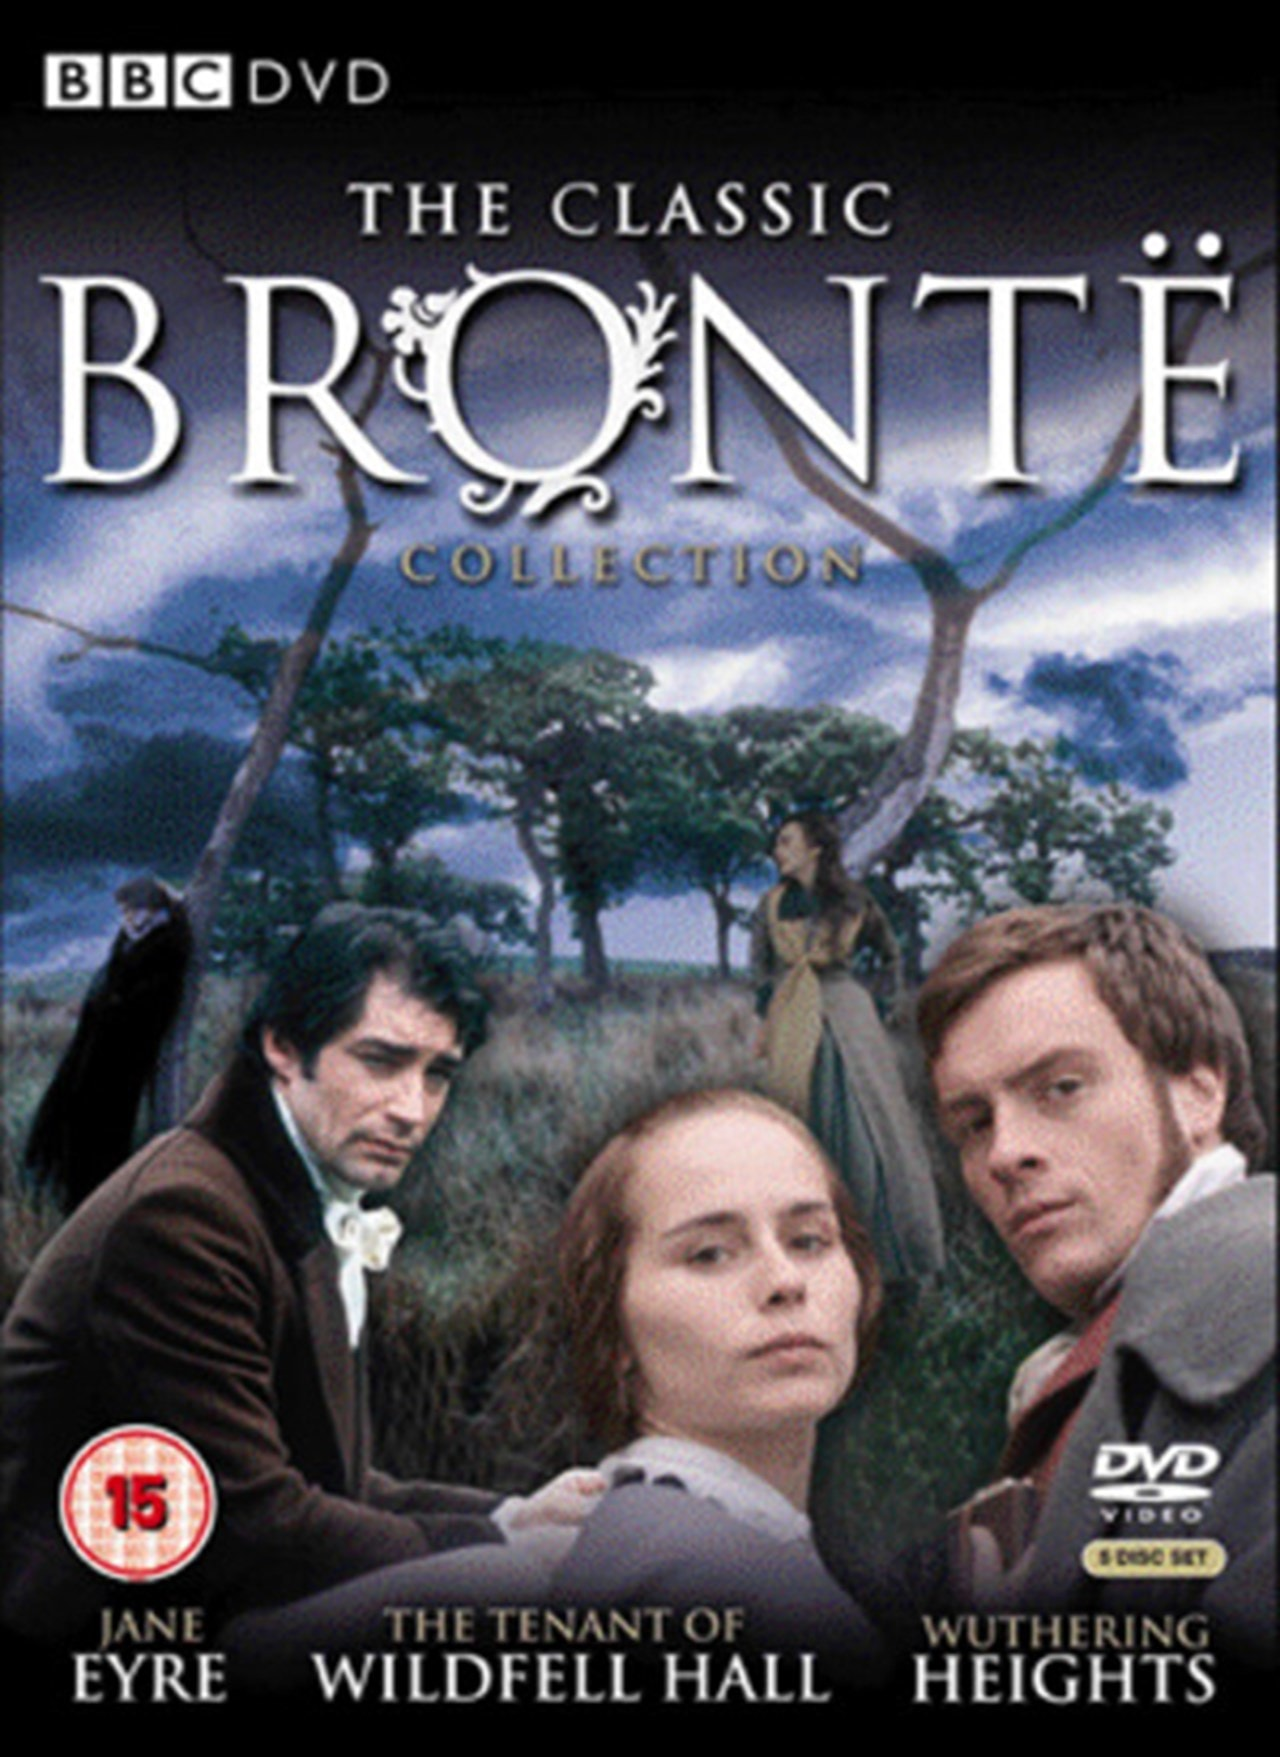 Bronte Collection - 1